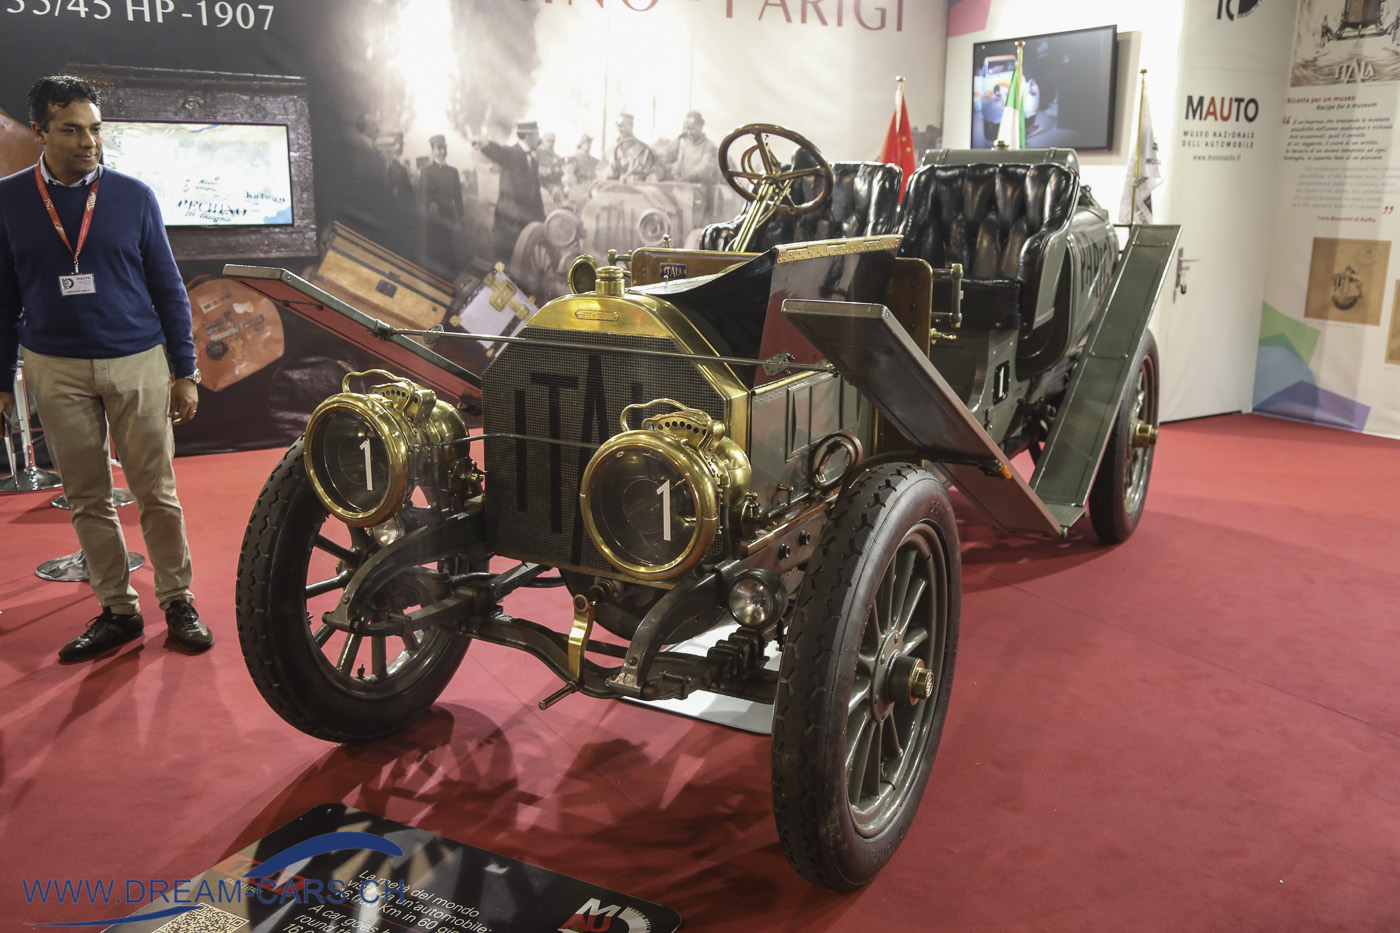 Auto e Moto d'Epoca Padua 2019. Itala 35/45 HP 1907, Peking-Paris. 16'000 KM in 60 Tagen